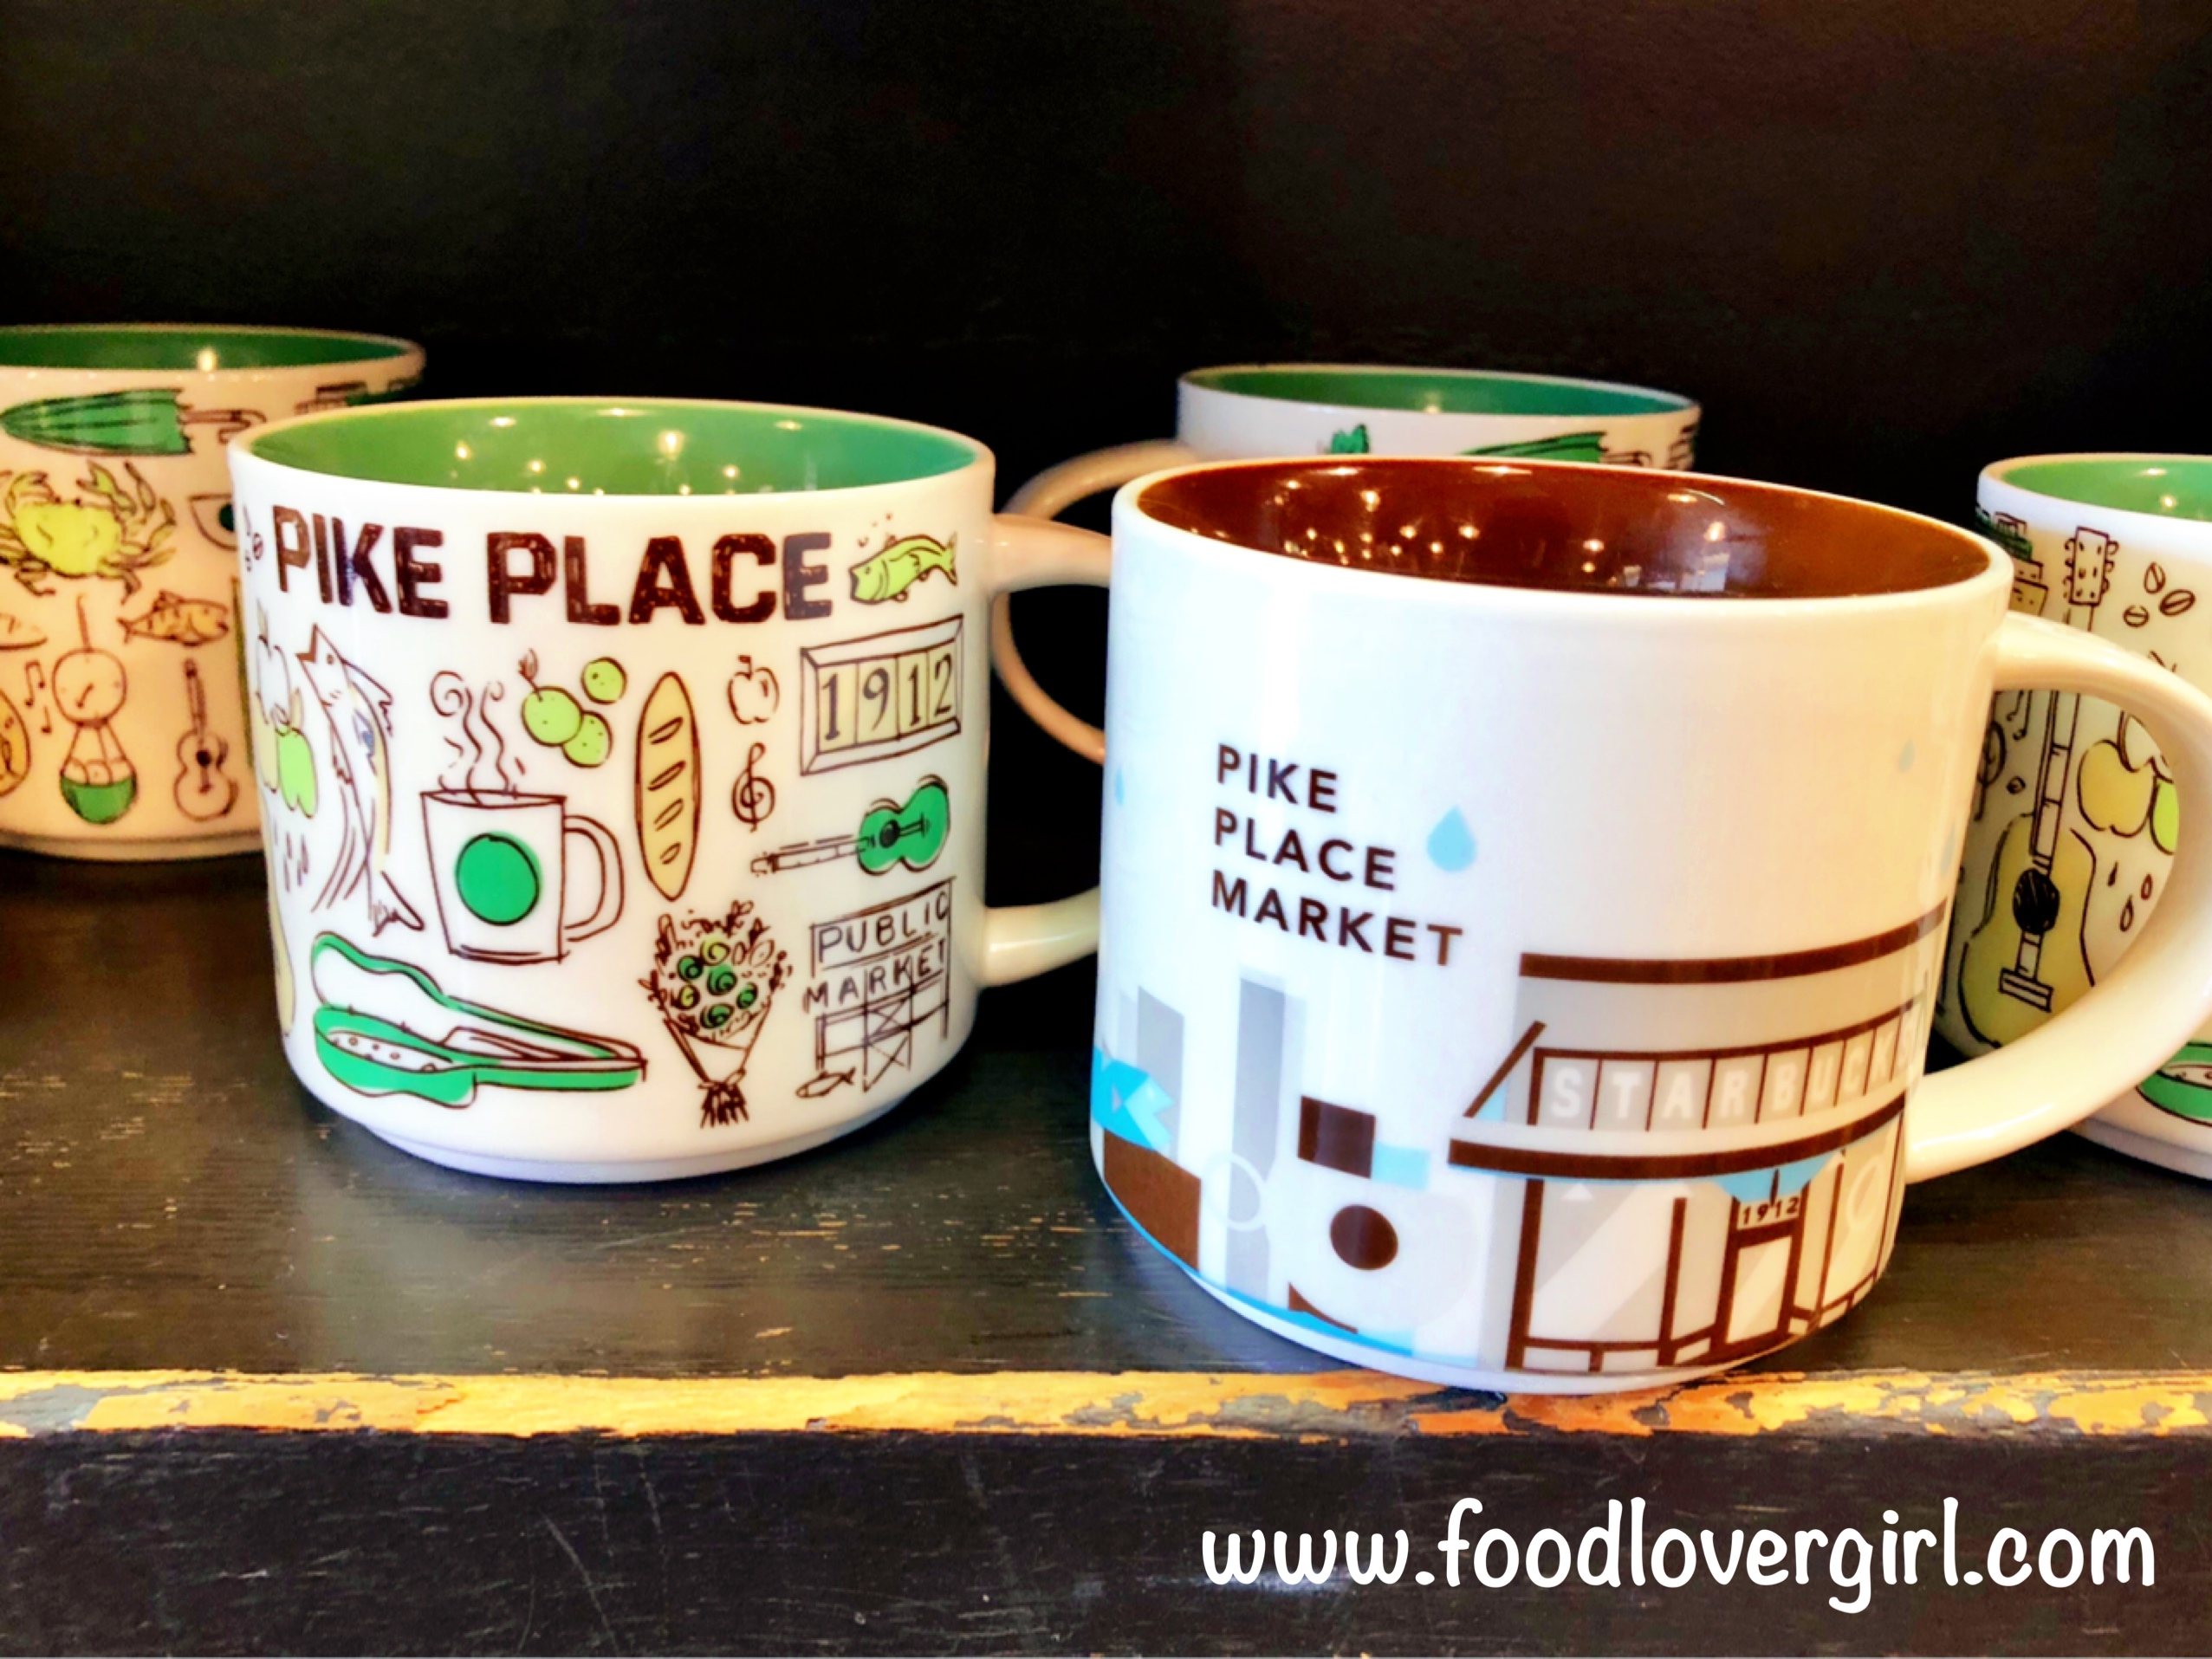 Stores In – Seattle Starbucks Food Lover Girl 7Yb6gyf